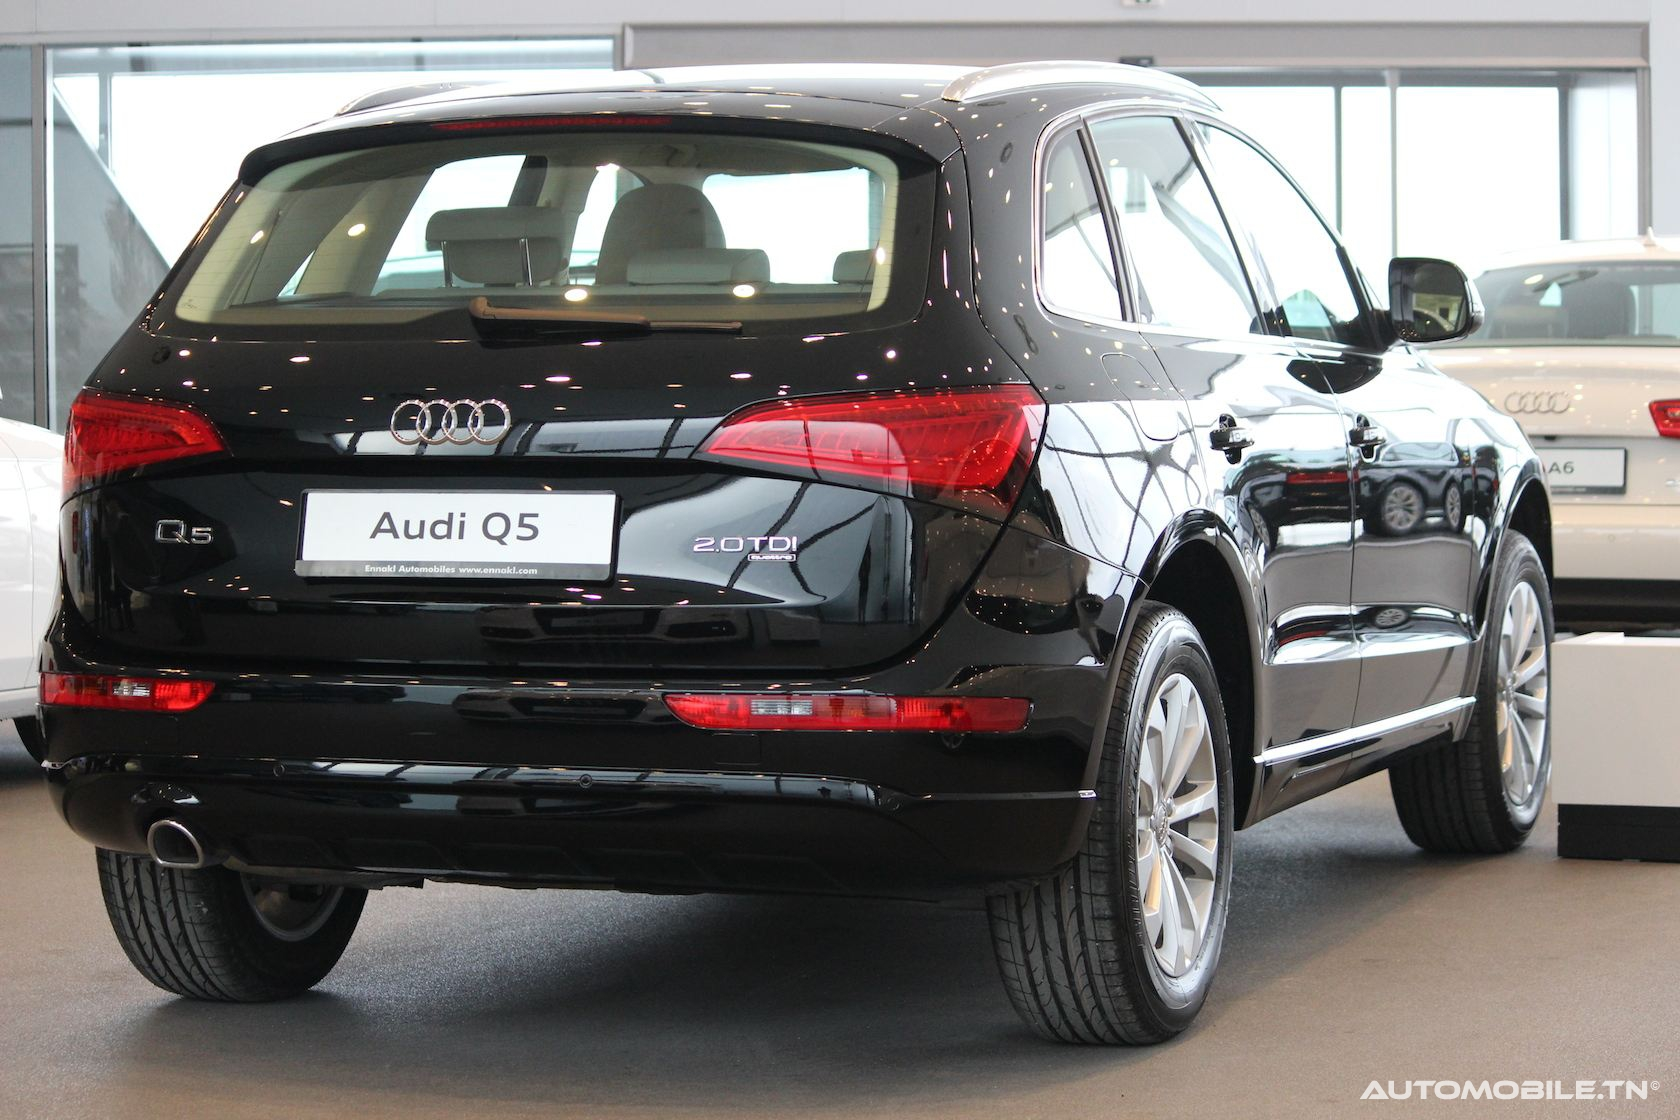 nouveaut s l 39 audi q5 restyl disponible chez ennakl automobiles. Black Bedroom Furniture Sets. Home Design Ideas